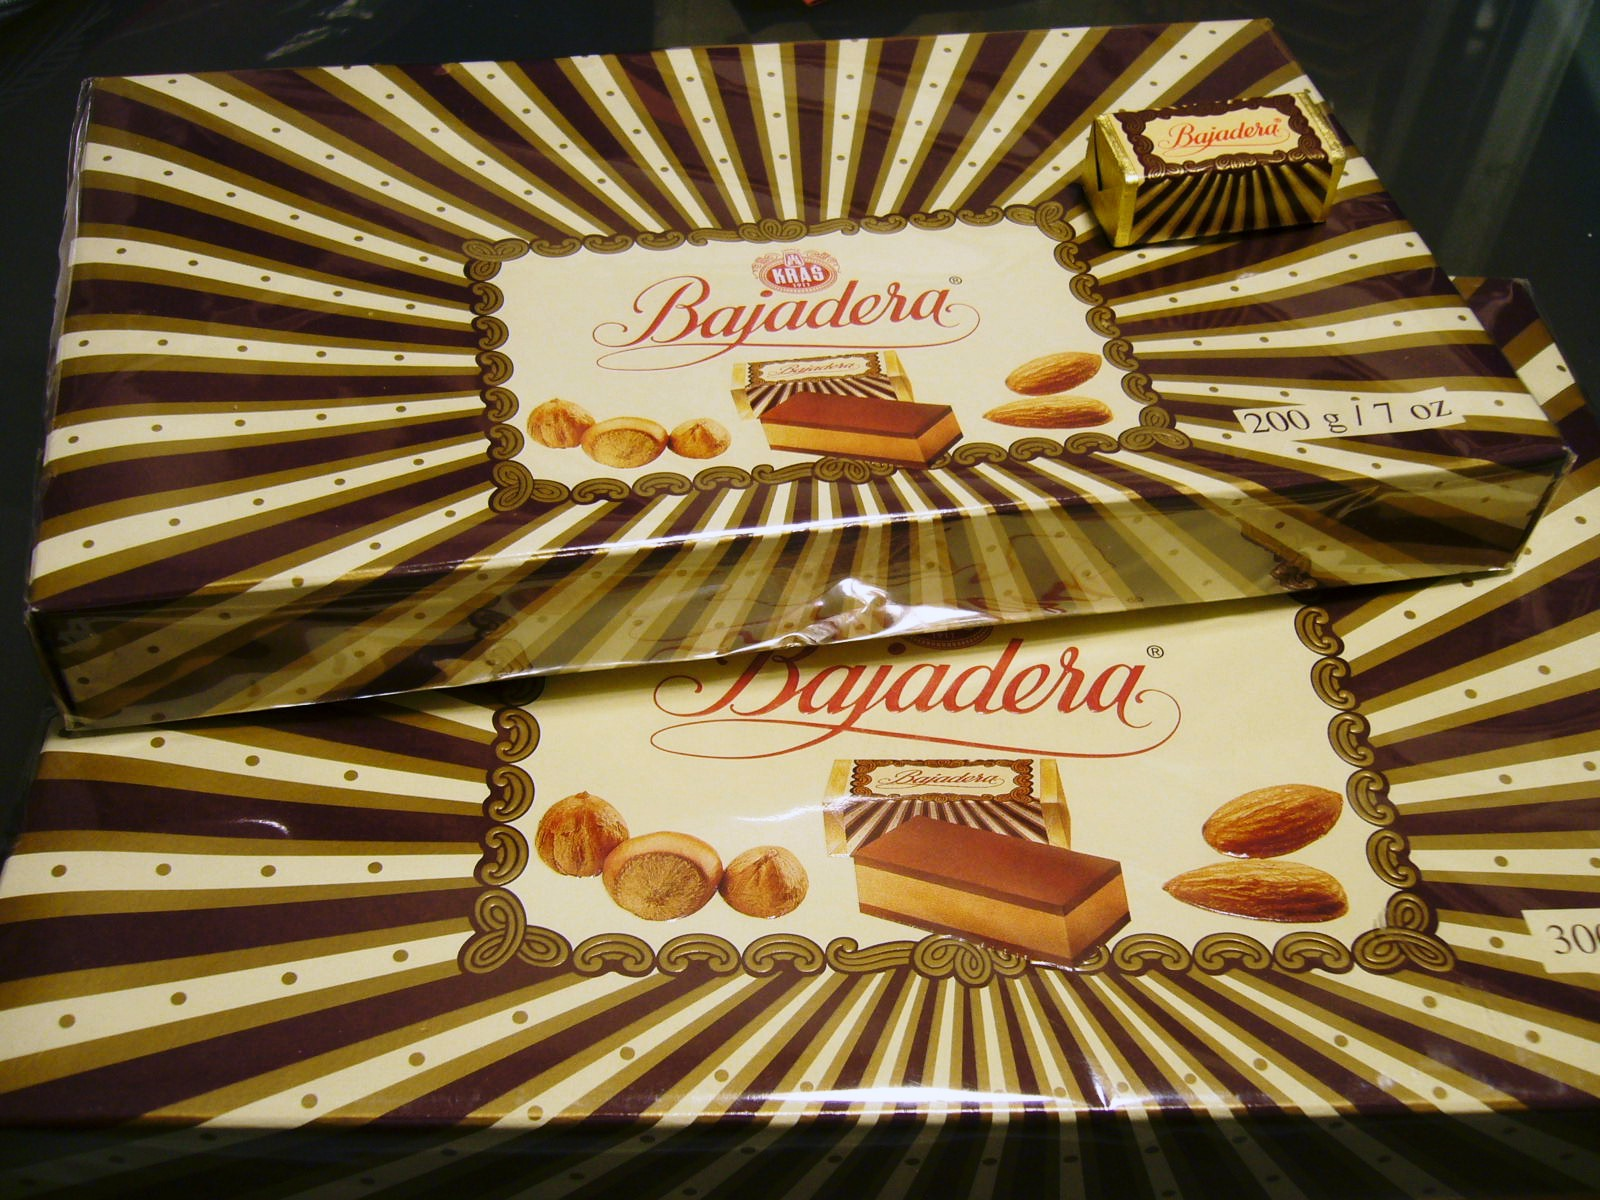 "BAJADERA THIS WORLD KNOWN DELICIOUS NOUGAT, PRODUCED BY KRAŠ, CONSISTS OF A CREAMY HAZELNUT AND ALMOND FILLING BETWEEN TWO LAYERS OF MILK CHOCOLATE. A BOX OF THESE TASTY CHOCOLATES WITH ITS DISTINCTIVE GOLD AND YELLOW DESIGN IS A TRUE CROATIAN CLASSIC, GIFTED AS A TOKEN OF APPRECIATION WHEN VISITING.   BAJADERA CHOCOLATES  YOU EVER TRIED ONE OF THESE?  IF YOU SEE ONE YOU MIGHT WANT TO. TASTY.  ITS A PRODUCT OF CROATIA AND YOU CAN LOOK FOR IT IN THOSE LITTLE EURO MARTS.   THE MAGIC OF A SUPREME PLEASURE  BAJADERA IS ONE OF KRAŠ'S (KRAS FOOD INDUSTRY) BEST KNOWN BRANDS ON THE CROATIAN MARKET. THIS EXQUISITE CHOCOLATE COMBINES A CENTRAL EUROPEAN CONFECTIONER'S ART WITH THE ORIENTAL EXTRAVAGANCE OF FLAVOURS. BAJADERA IS THE QUEEN OF CHOCOLATES, FINE NOUGAT BLENDED WITH ALMONDS WHICH GIVES A UNIQUE, RECOGNIZABLE FLAVOUR. BAJADERA IS THE FIRST CROATIAN CONFECTIONERY PRODUCT TO BE GRANTED THE ""CROATIAN CREATION"" LABEL."